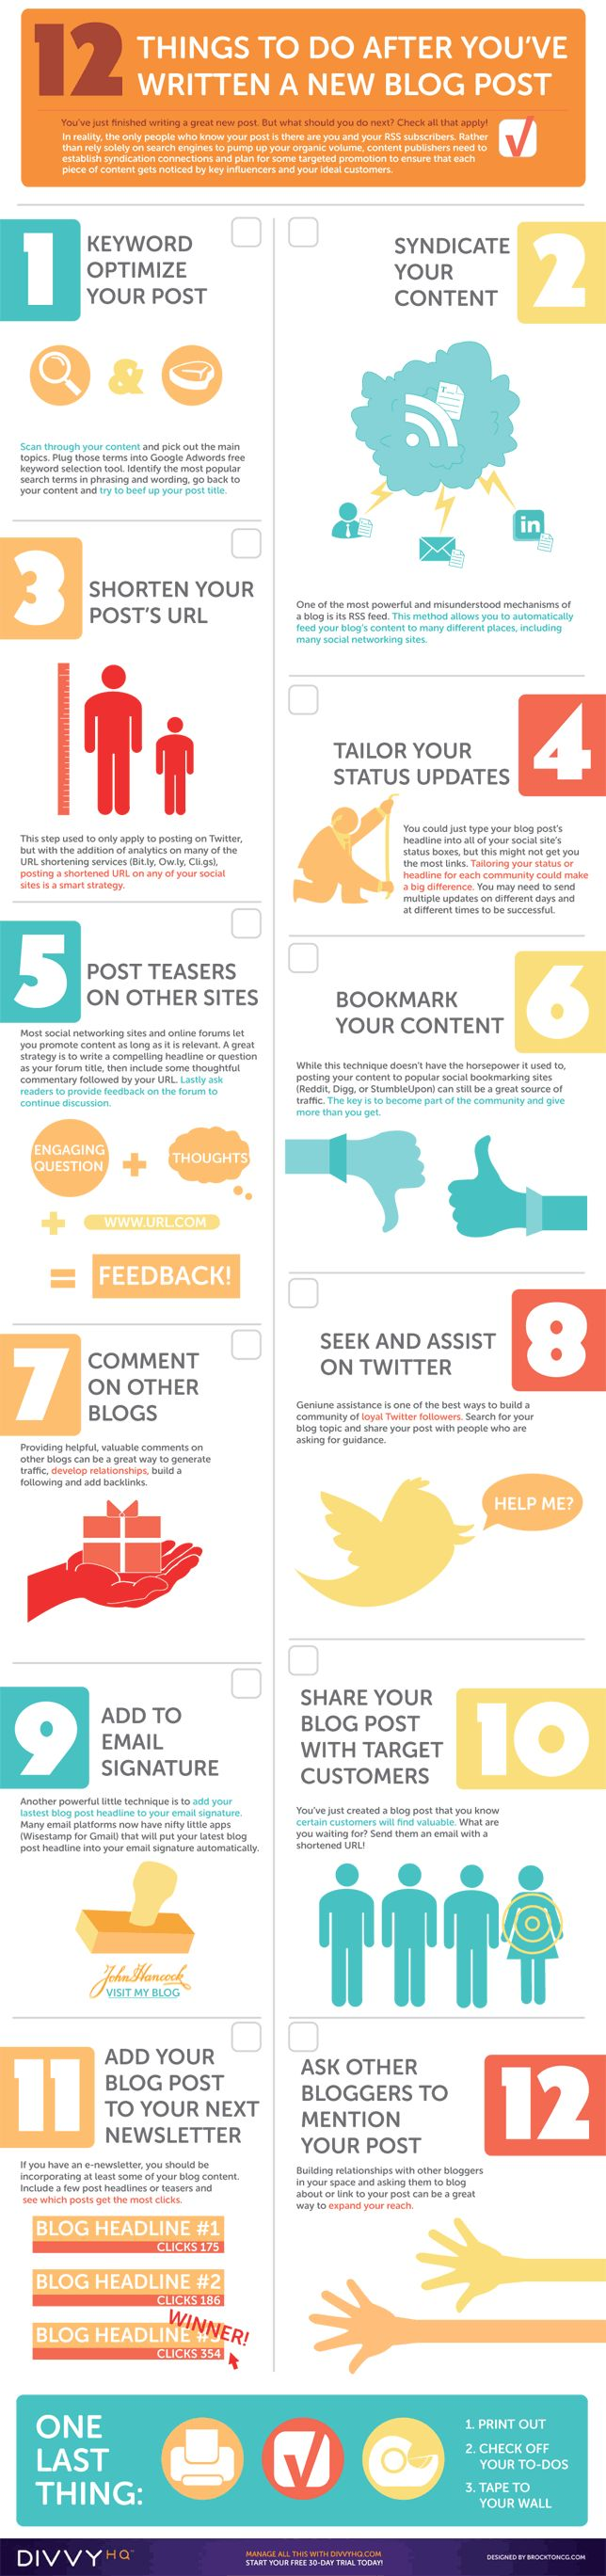 """[infographic] """"12 Things to do after you've written a new Blog post"""" May-2011 by Brocktoncg.com"""